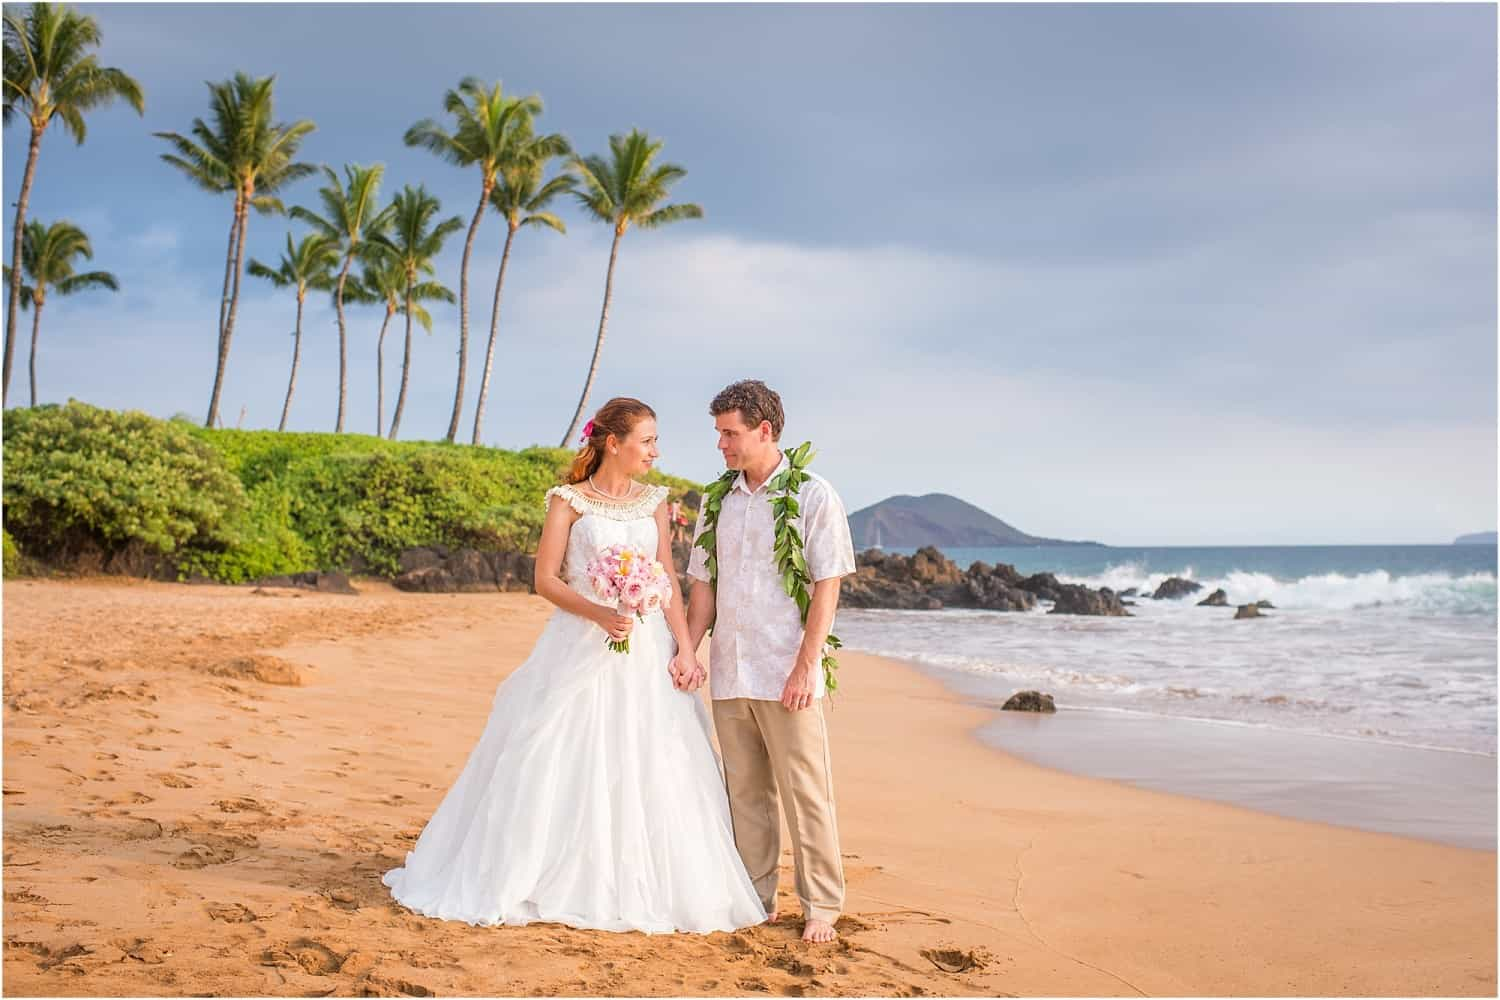 Maui Wedding by Mariah Milan and Maile Maui Weddings in Makena Hawaii